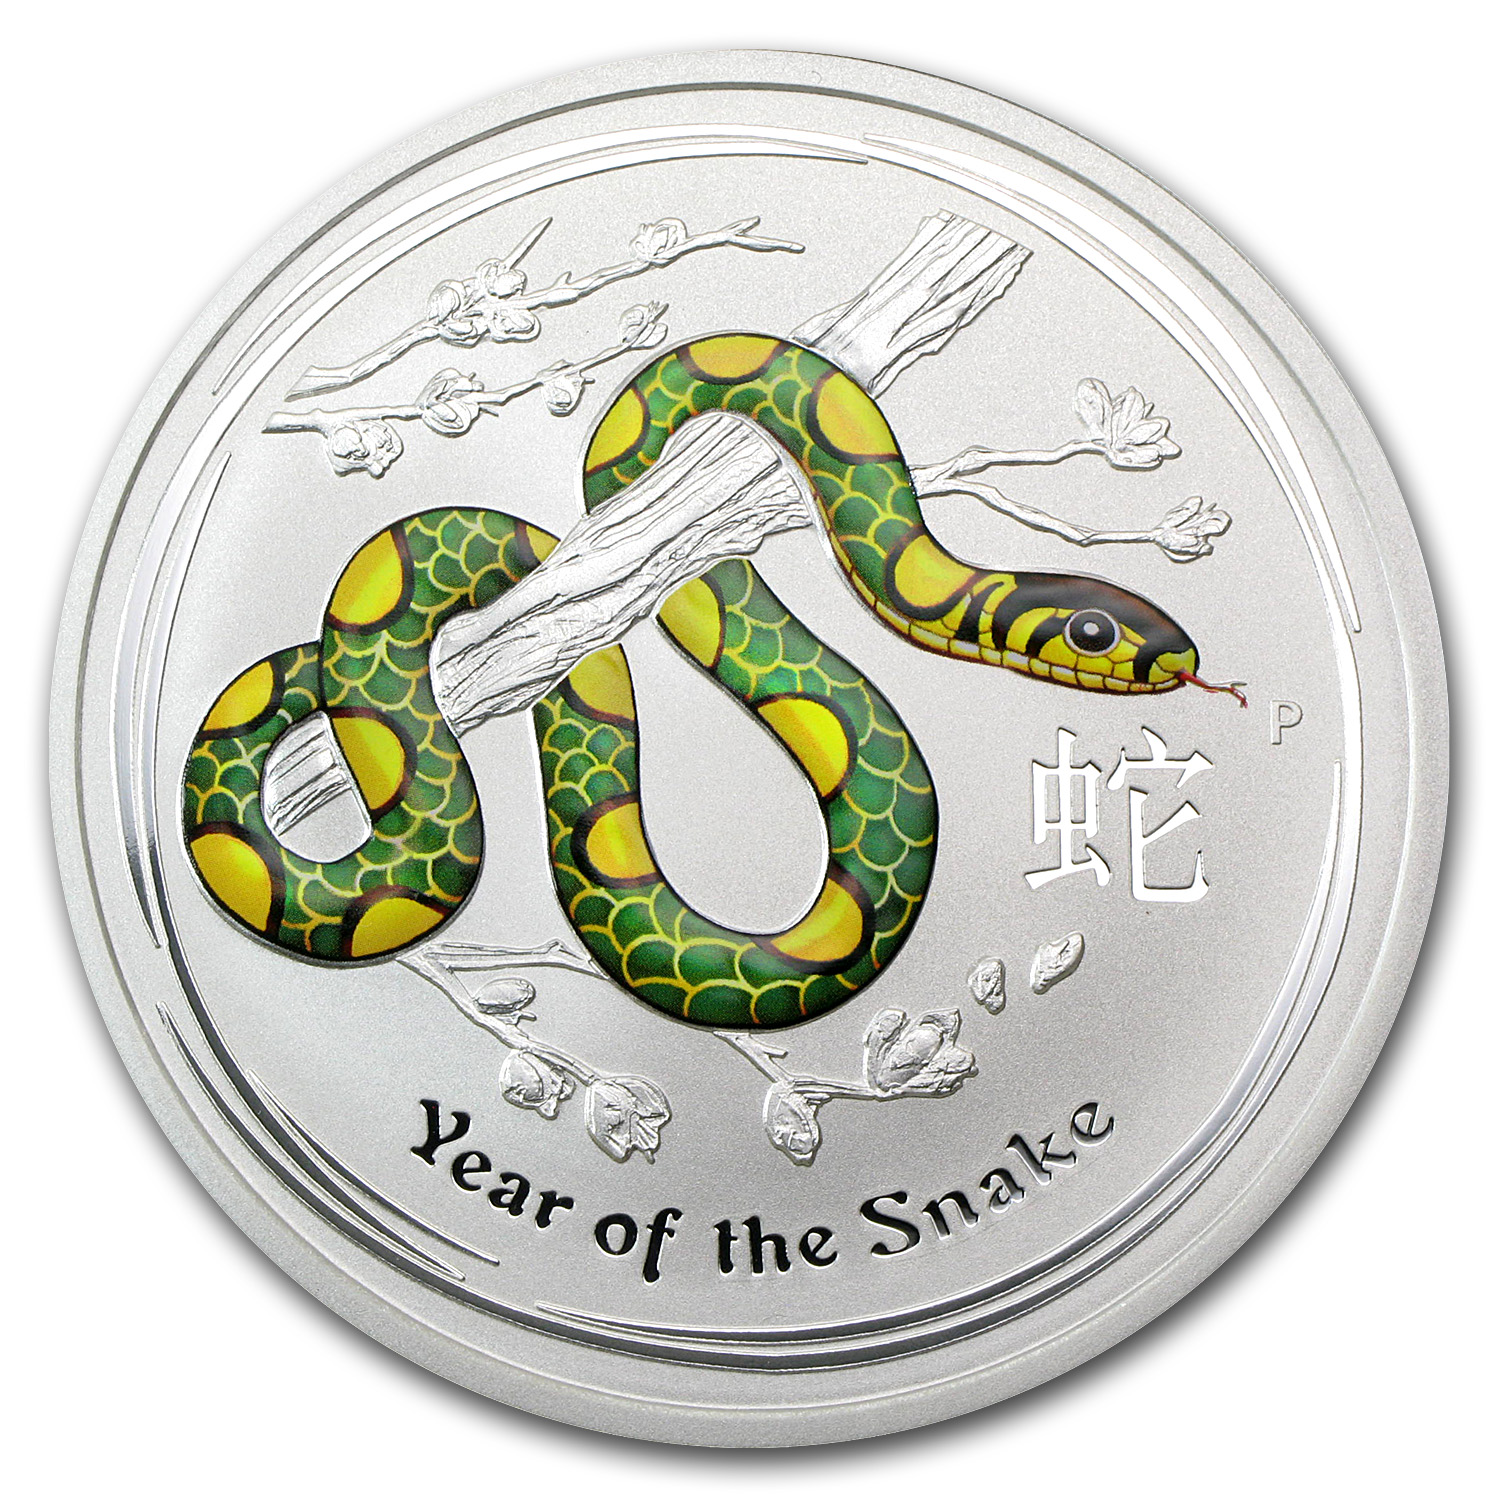 2013 5 oz Silver Australian Year of the Snake Colorized Coin